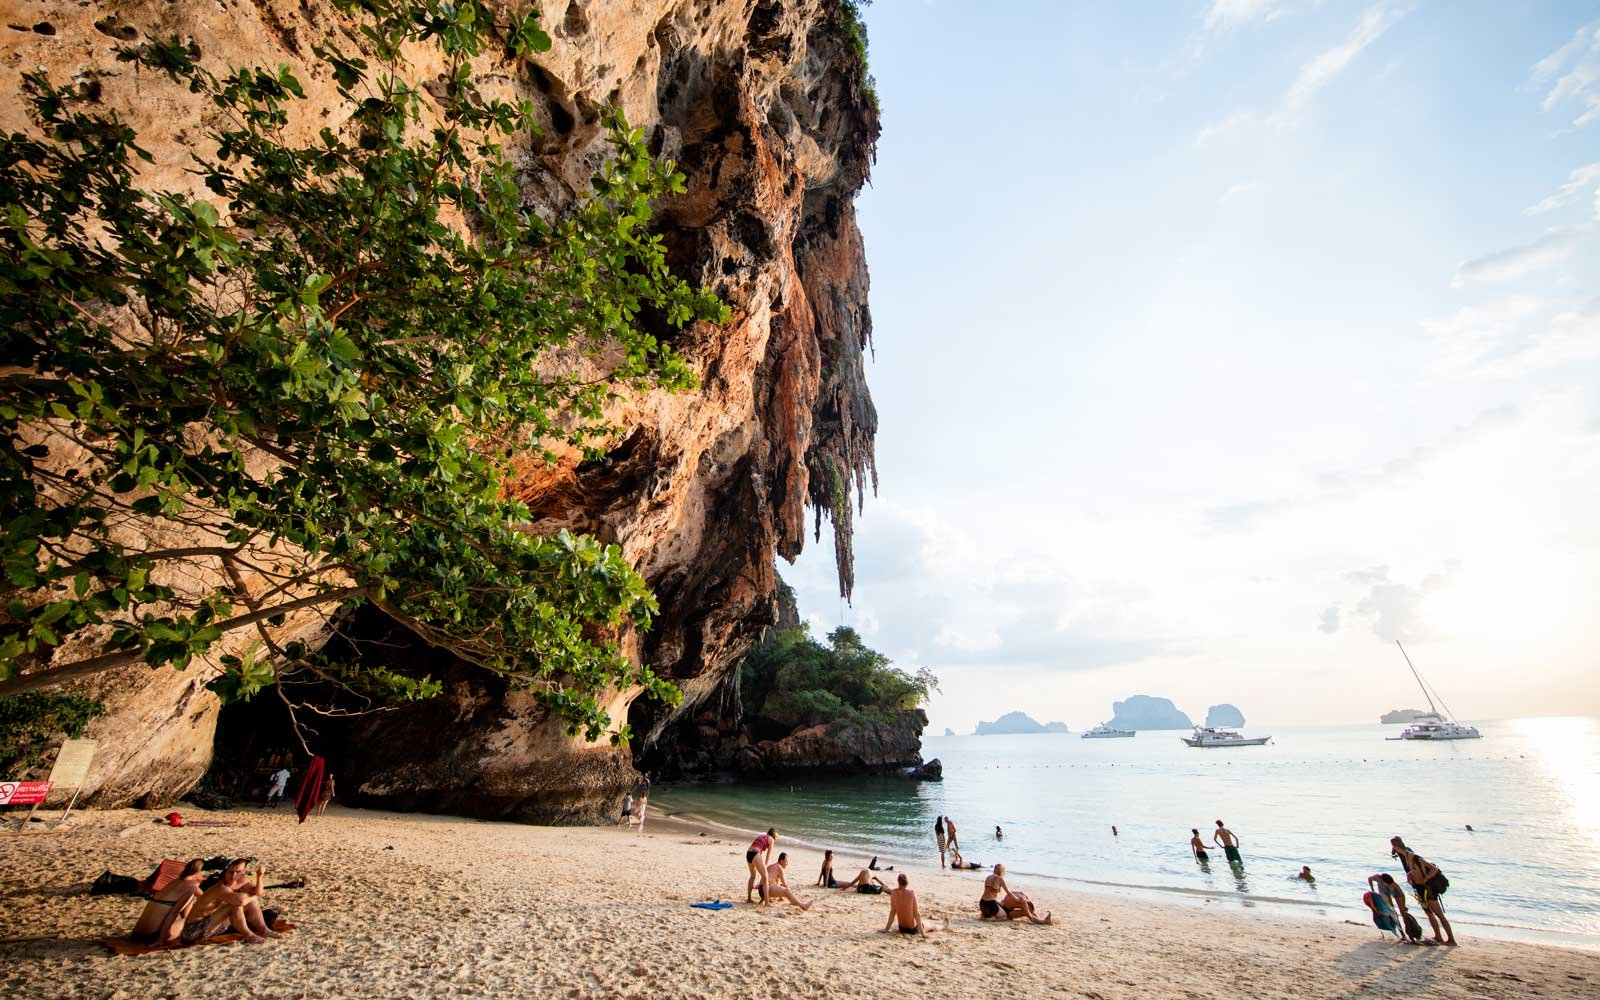 The cliffs at Railay Beach, sunset, Thailand.